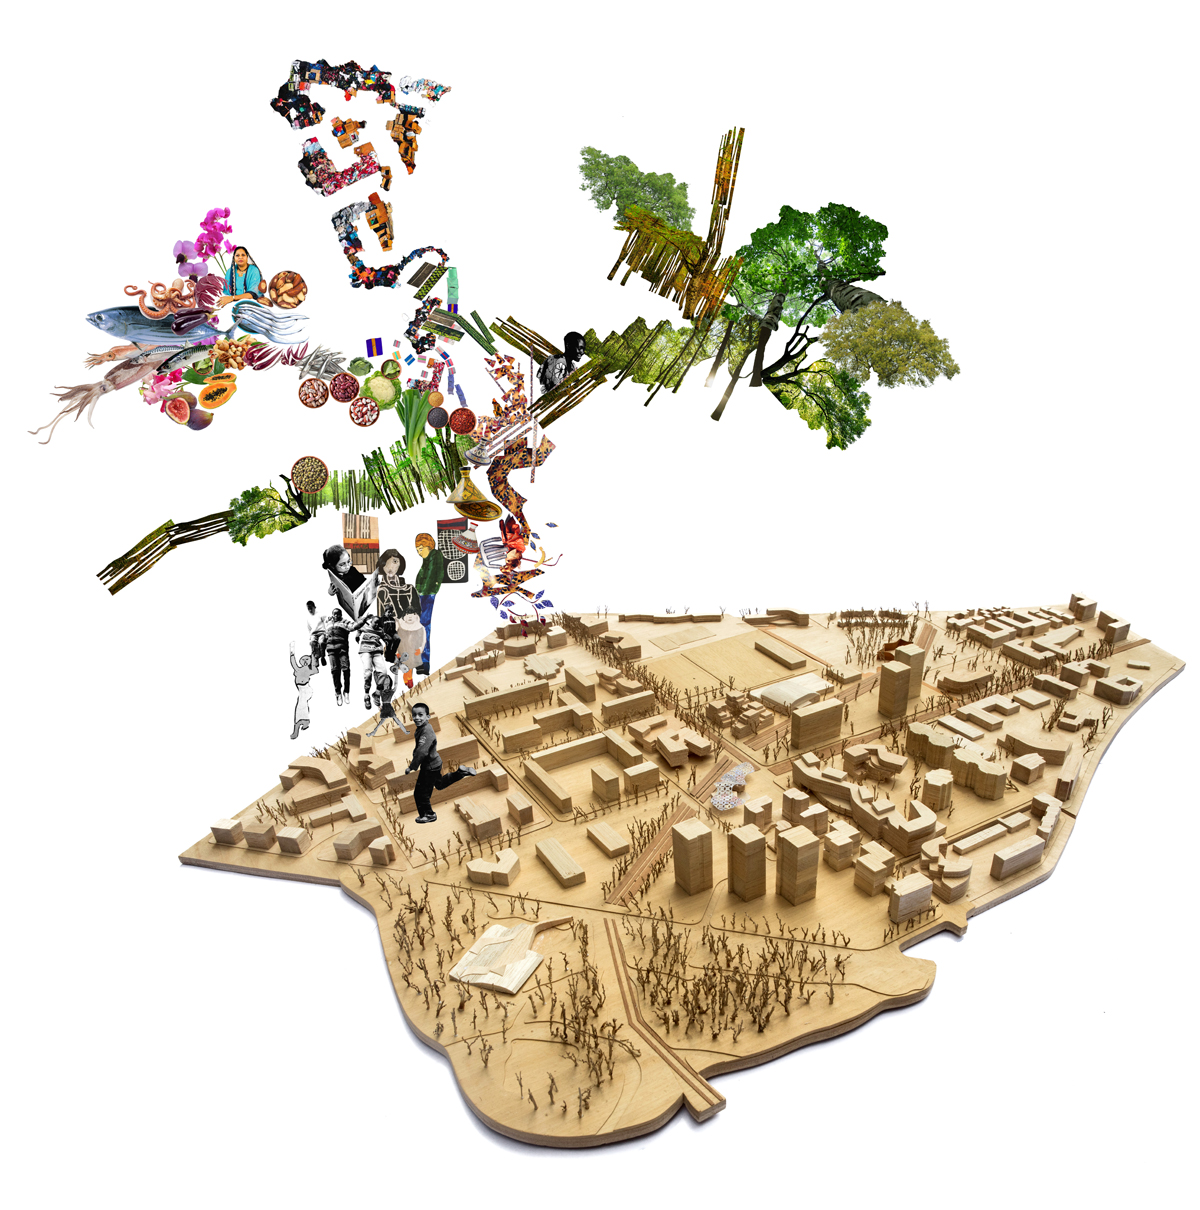 Plateau Central Masterplan and Housing, 2017  Benedetta Tagliabue - Miralles Tagliabue EMBT  (Conceptual Collage, from nature to public activities)